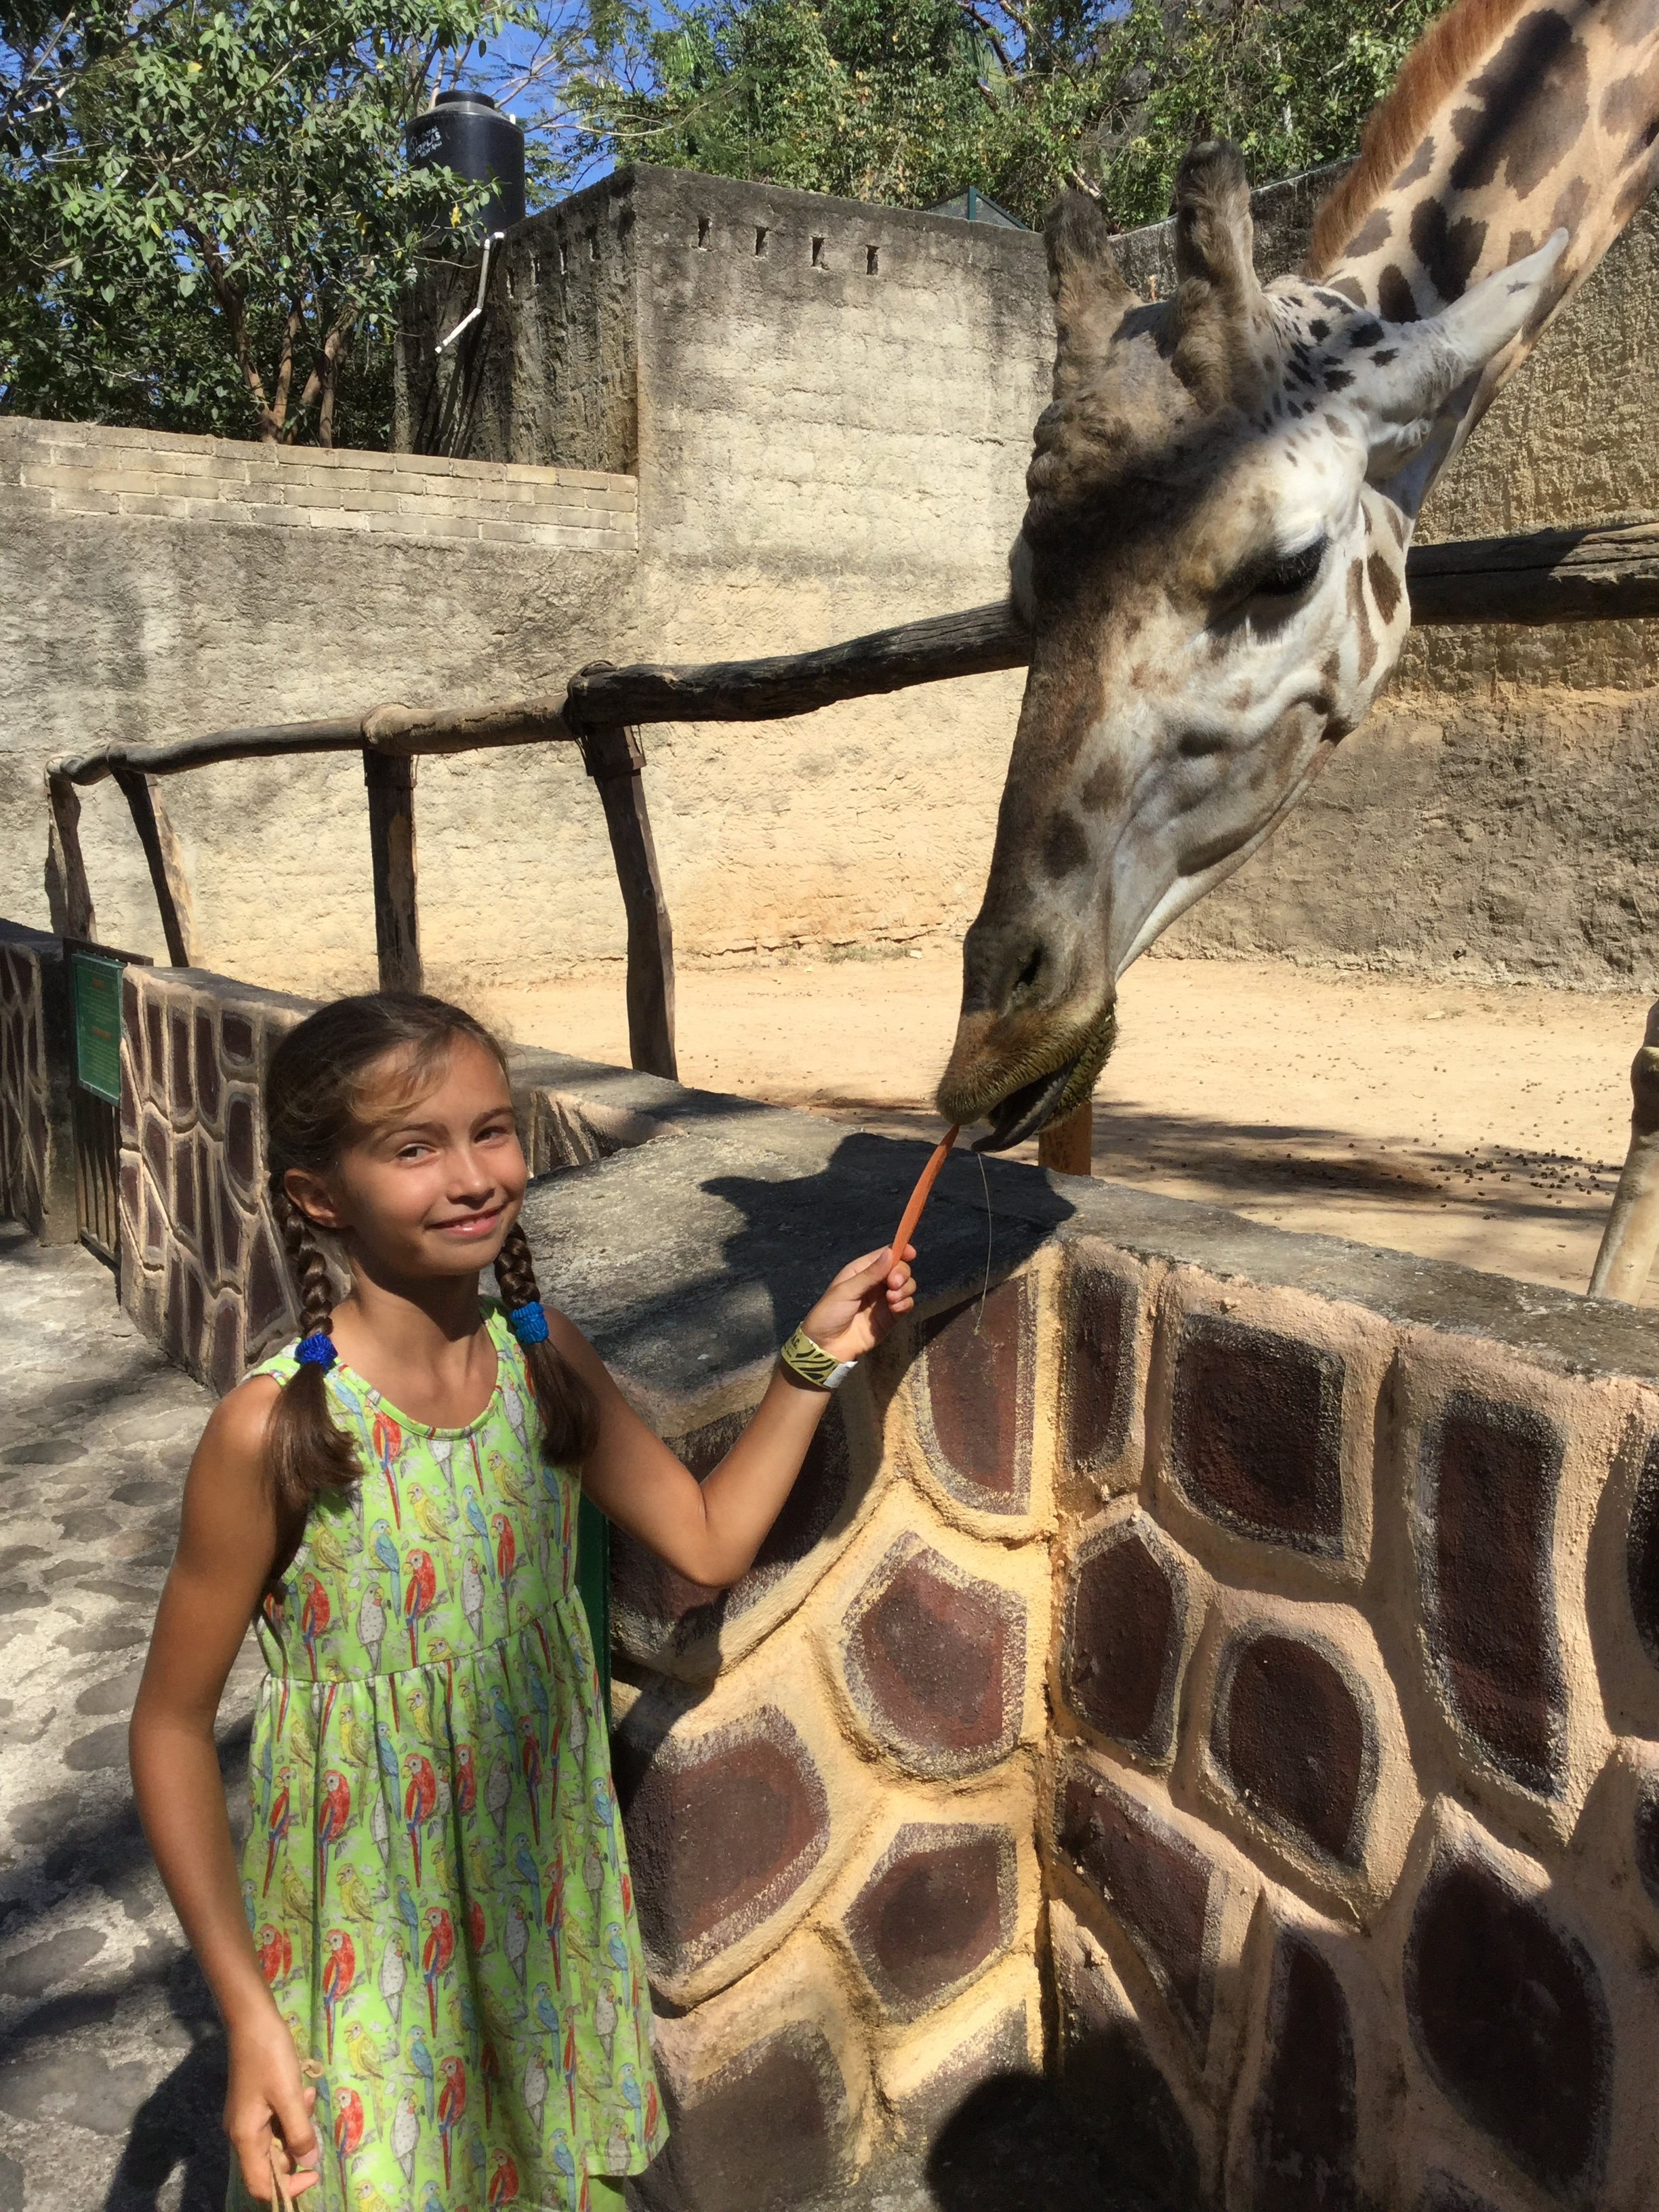 Lili feeding the very friendly giraffe.